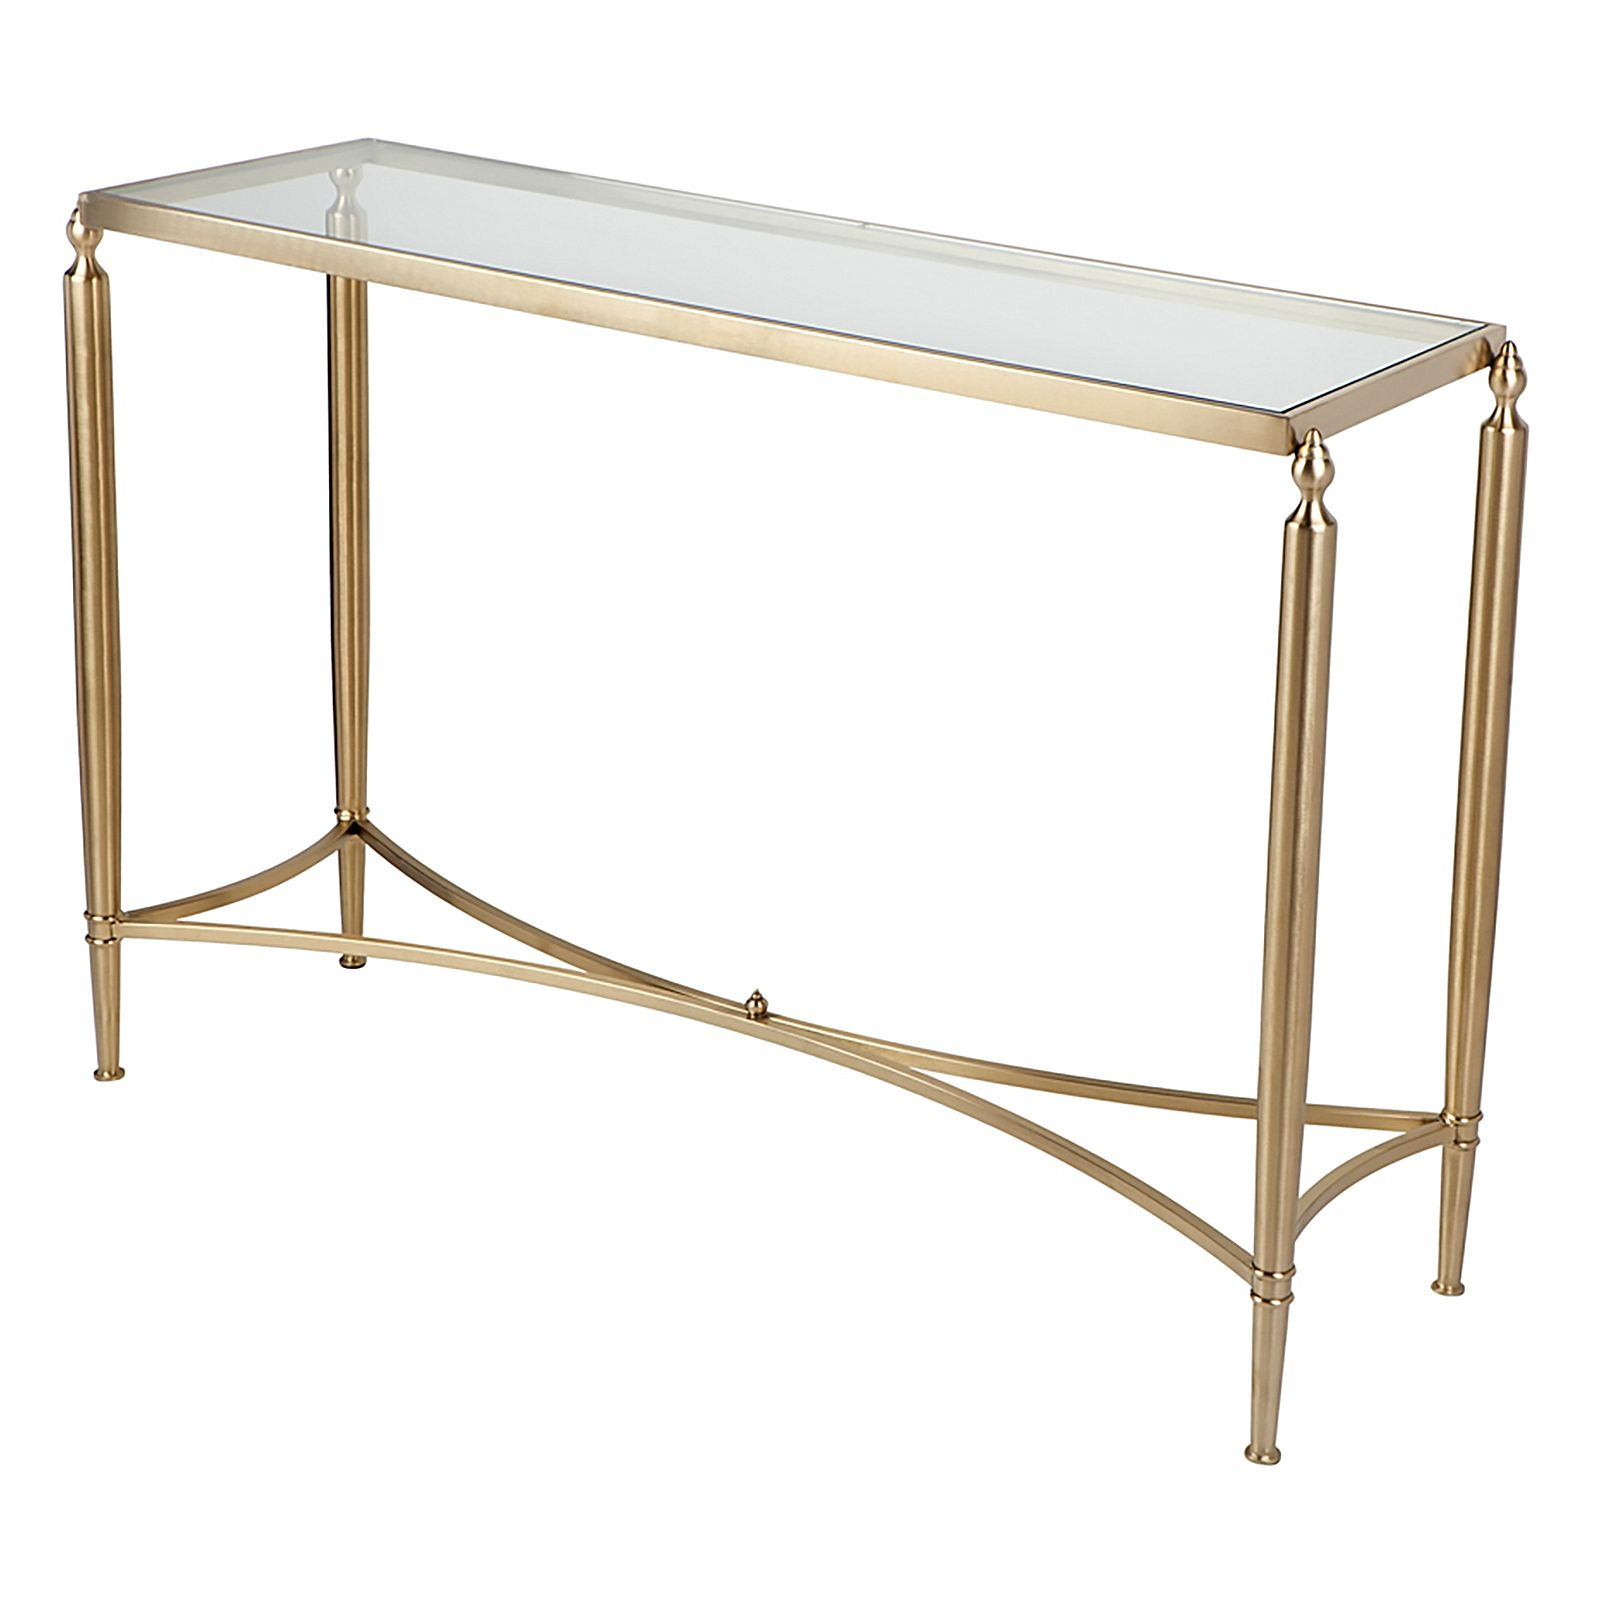 Jacques Console Table, Goldcafe Lighting & Living | Zanui Regarding Jacque Console Tables (View 7 of 20)